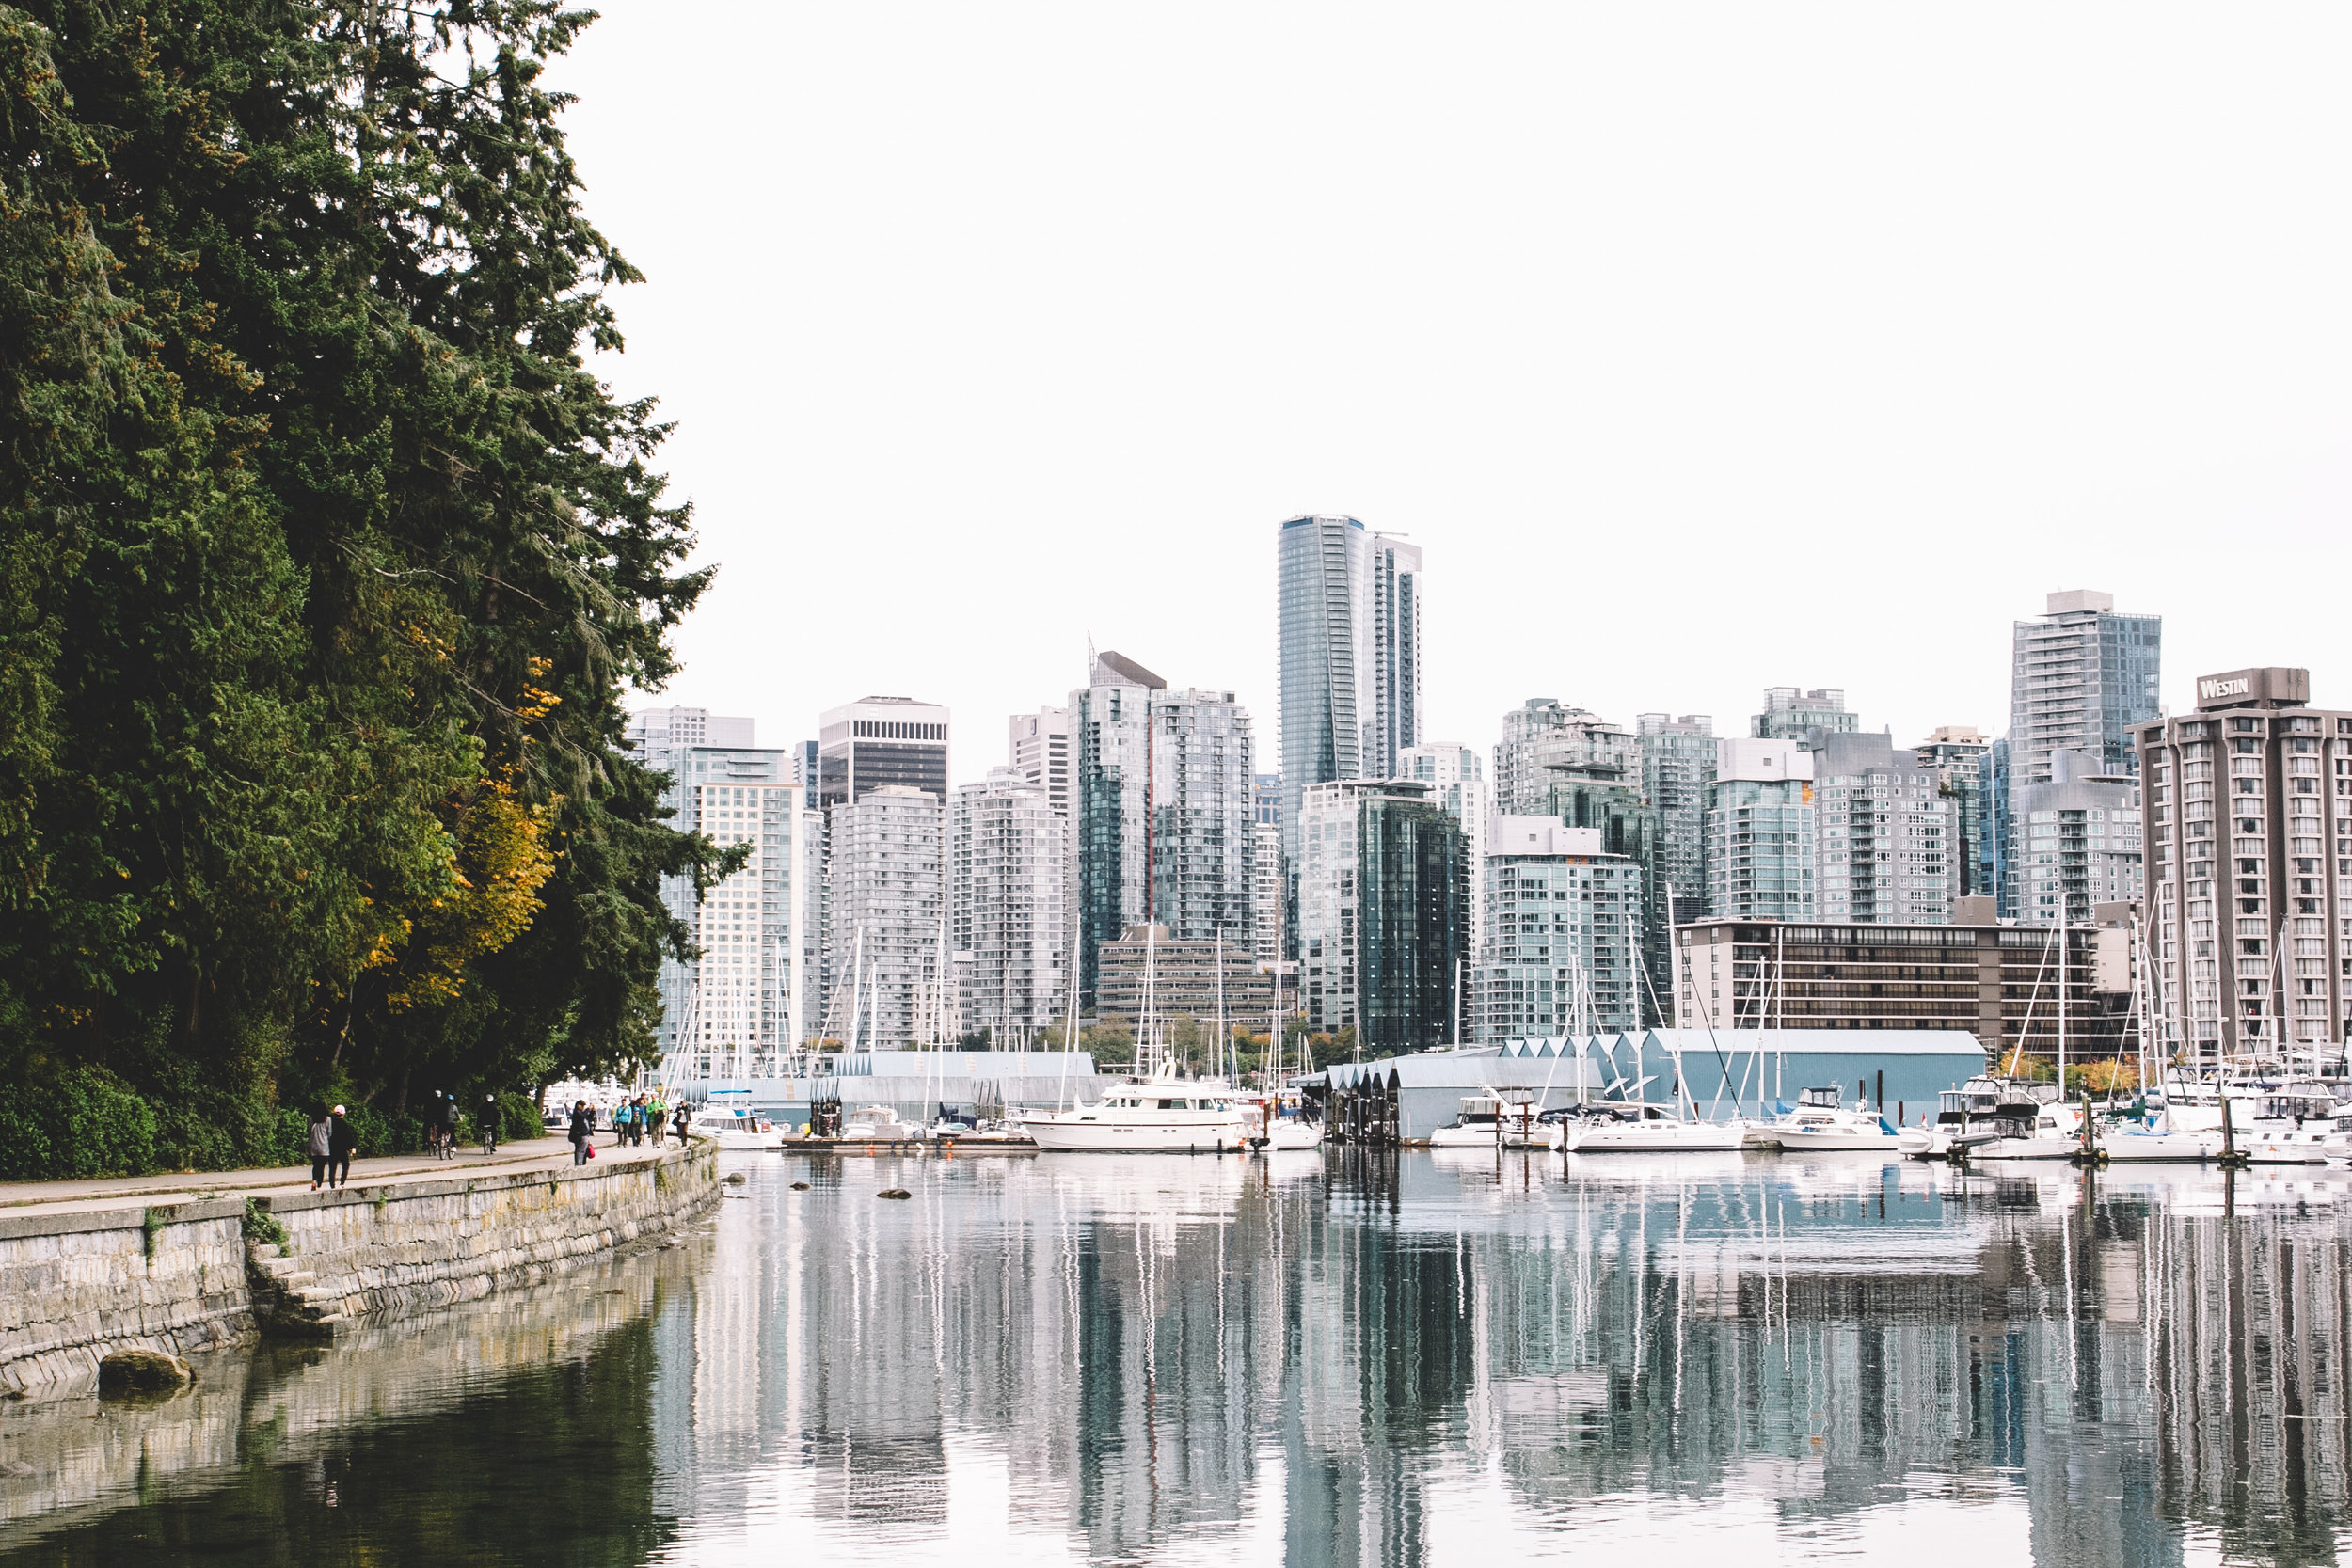 Discover Vancouver with Air New Zealand - Return Economy Class flights departing Auckland and 3 nights from $2,551*(NZD)Sale ends: 30 Nov 2019Travel Period: Commenced 20 Jan 2019 and completed 15 Dec 2019 (unless otherwise specified)